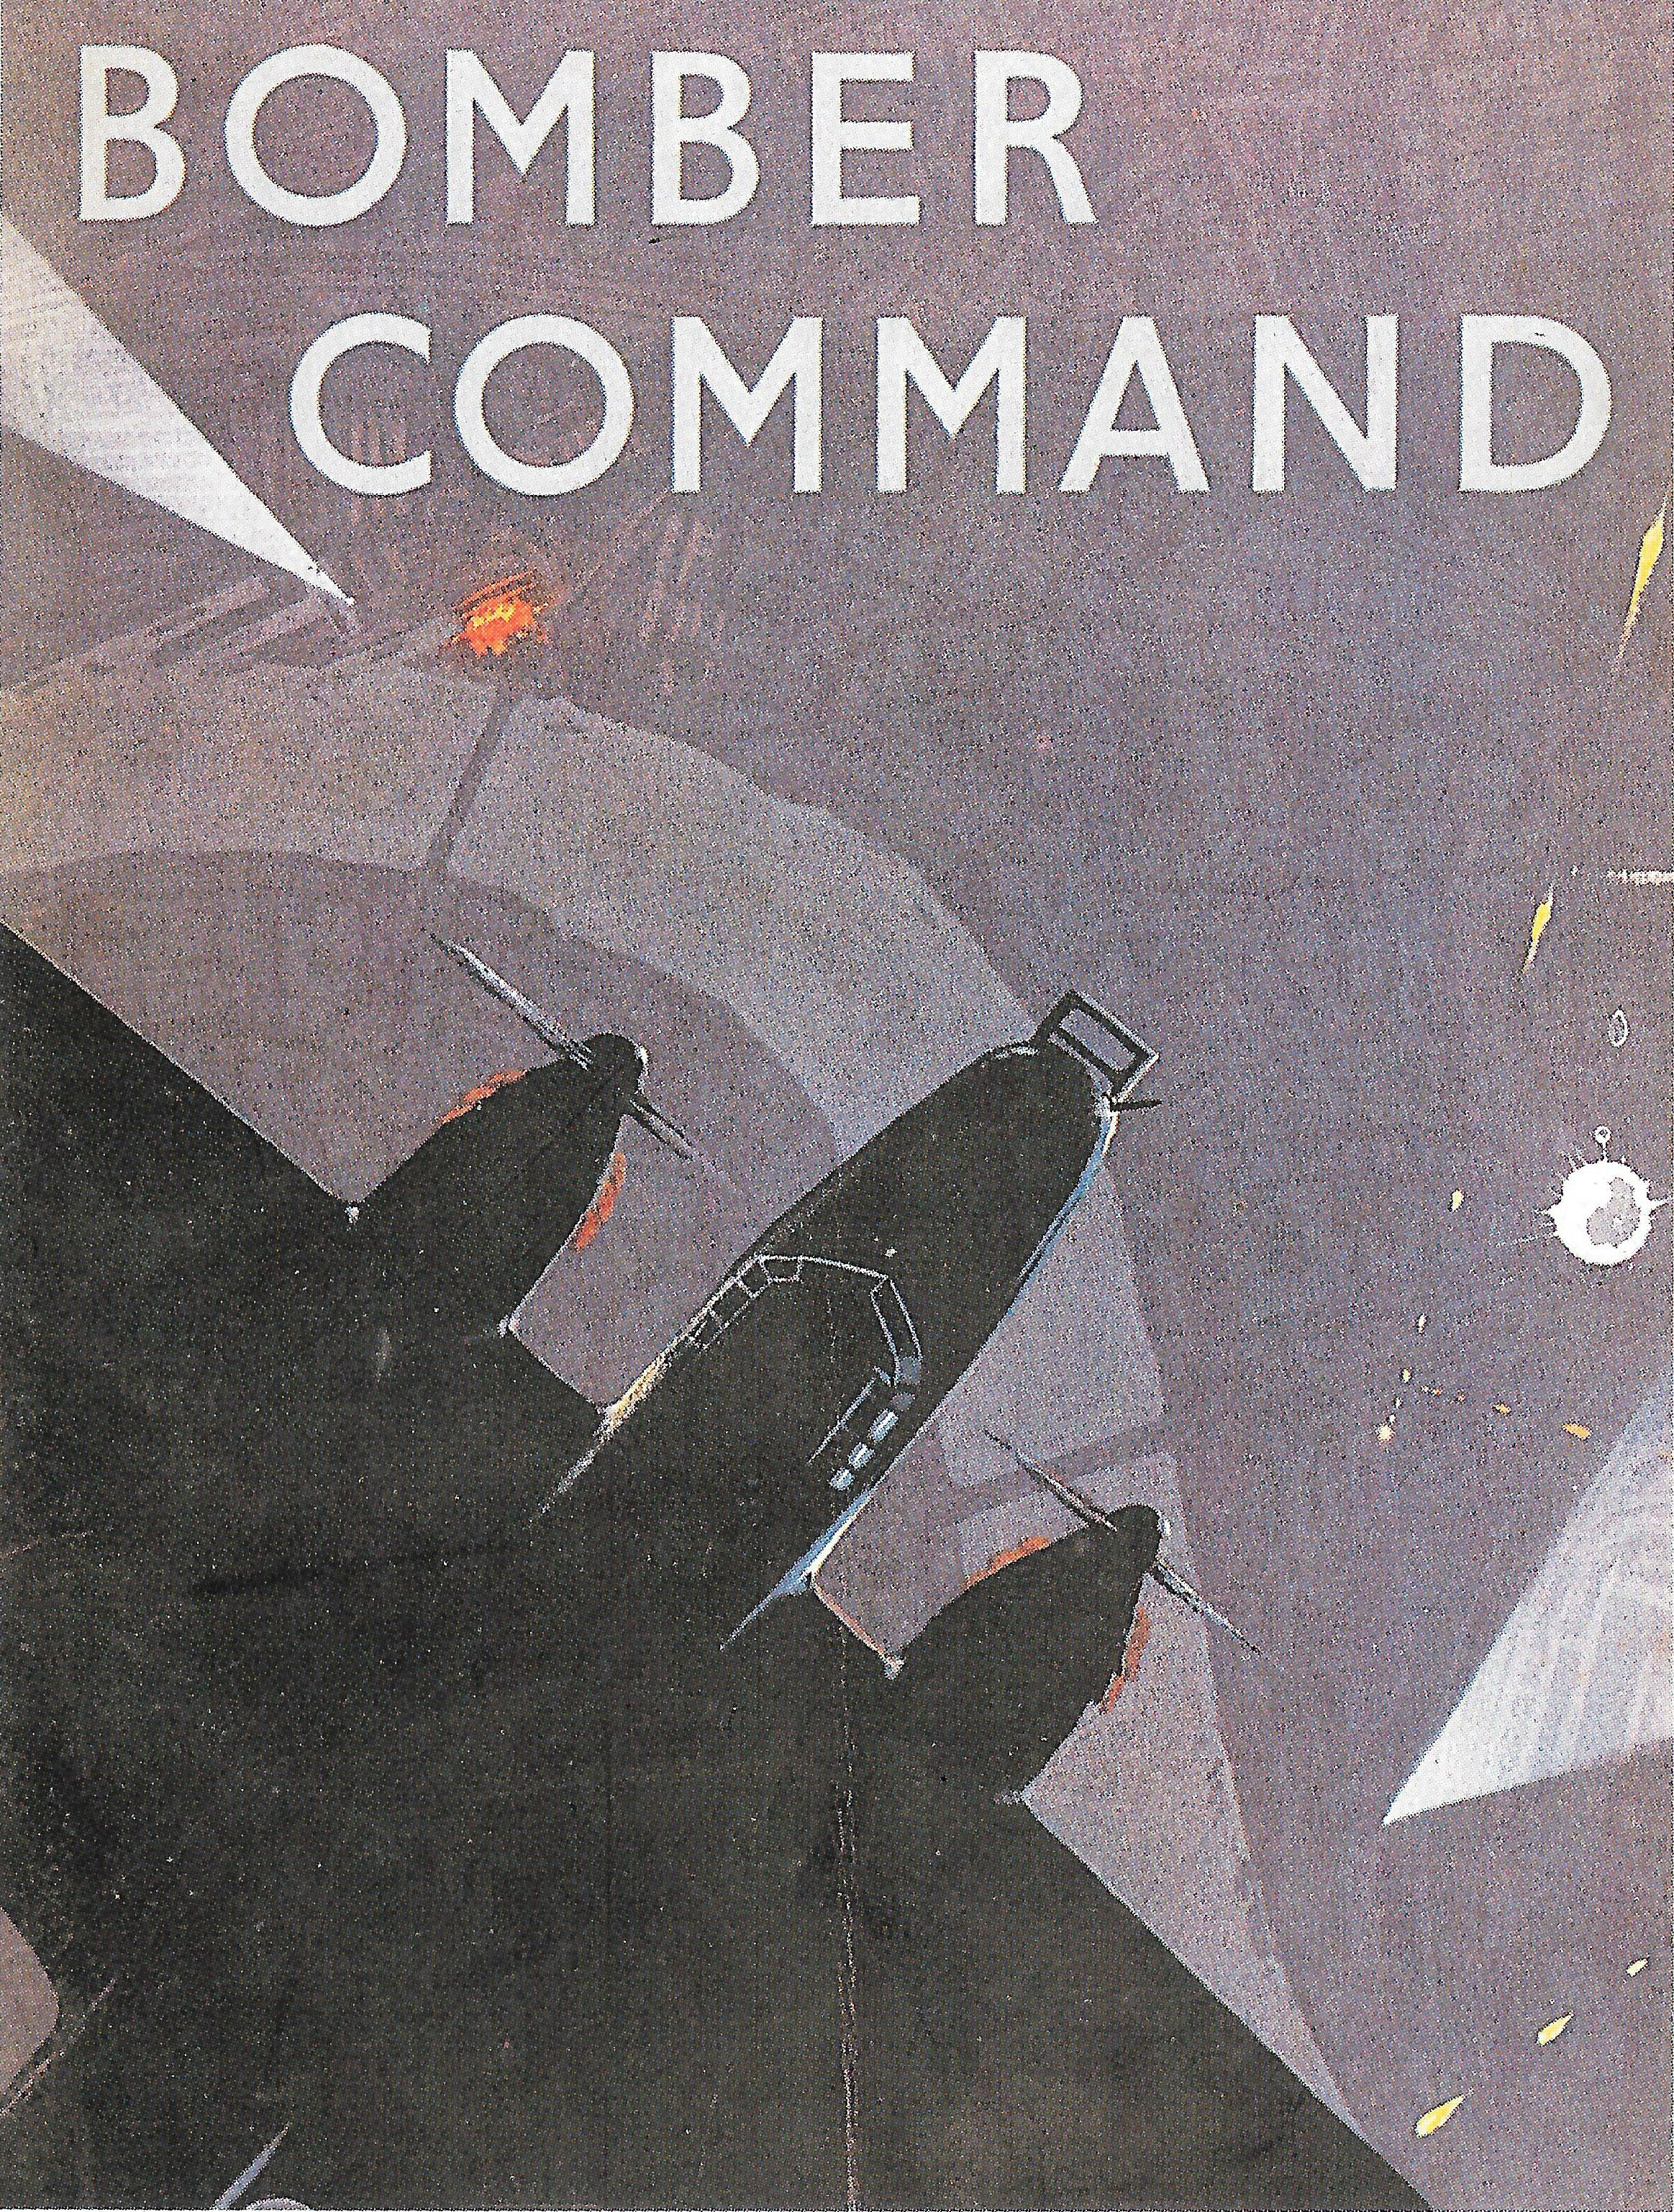 An Image of a Poster Reading 'Bomber Command'